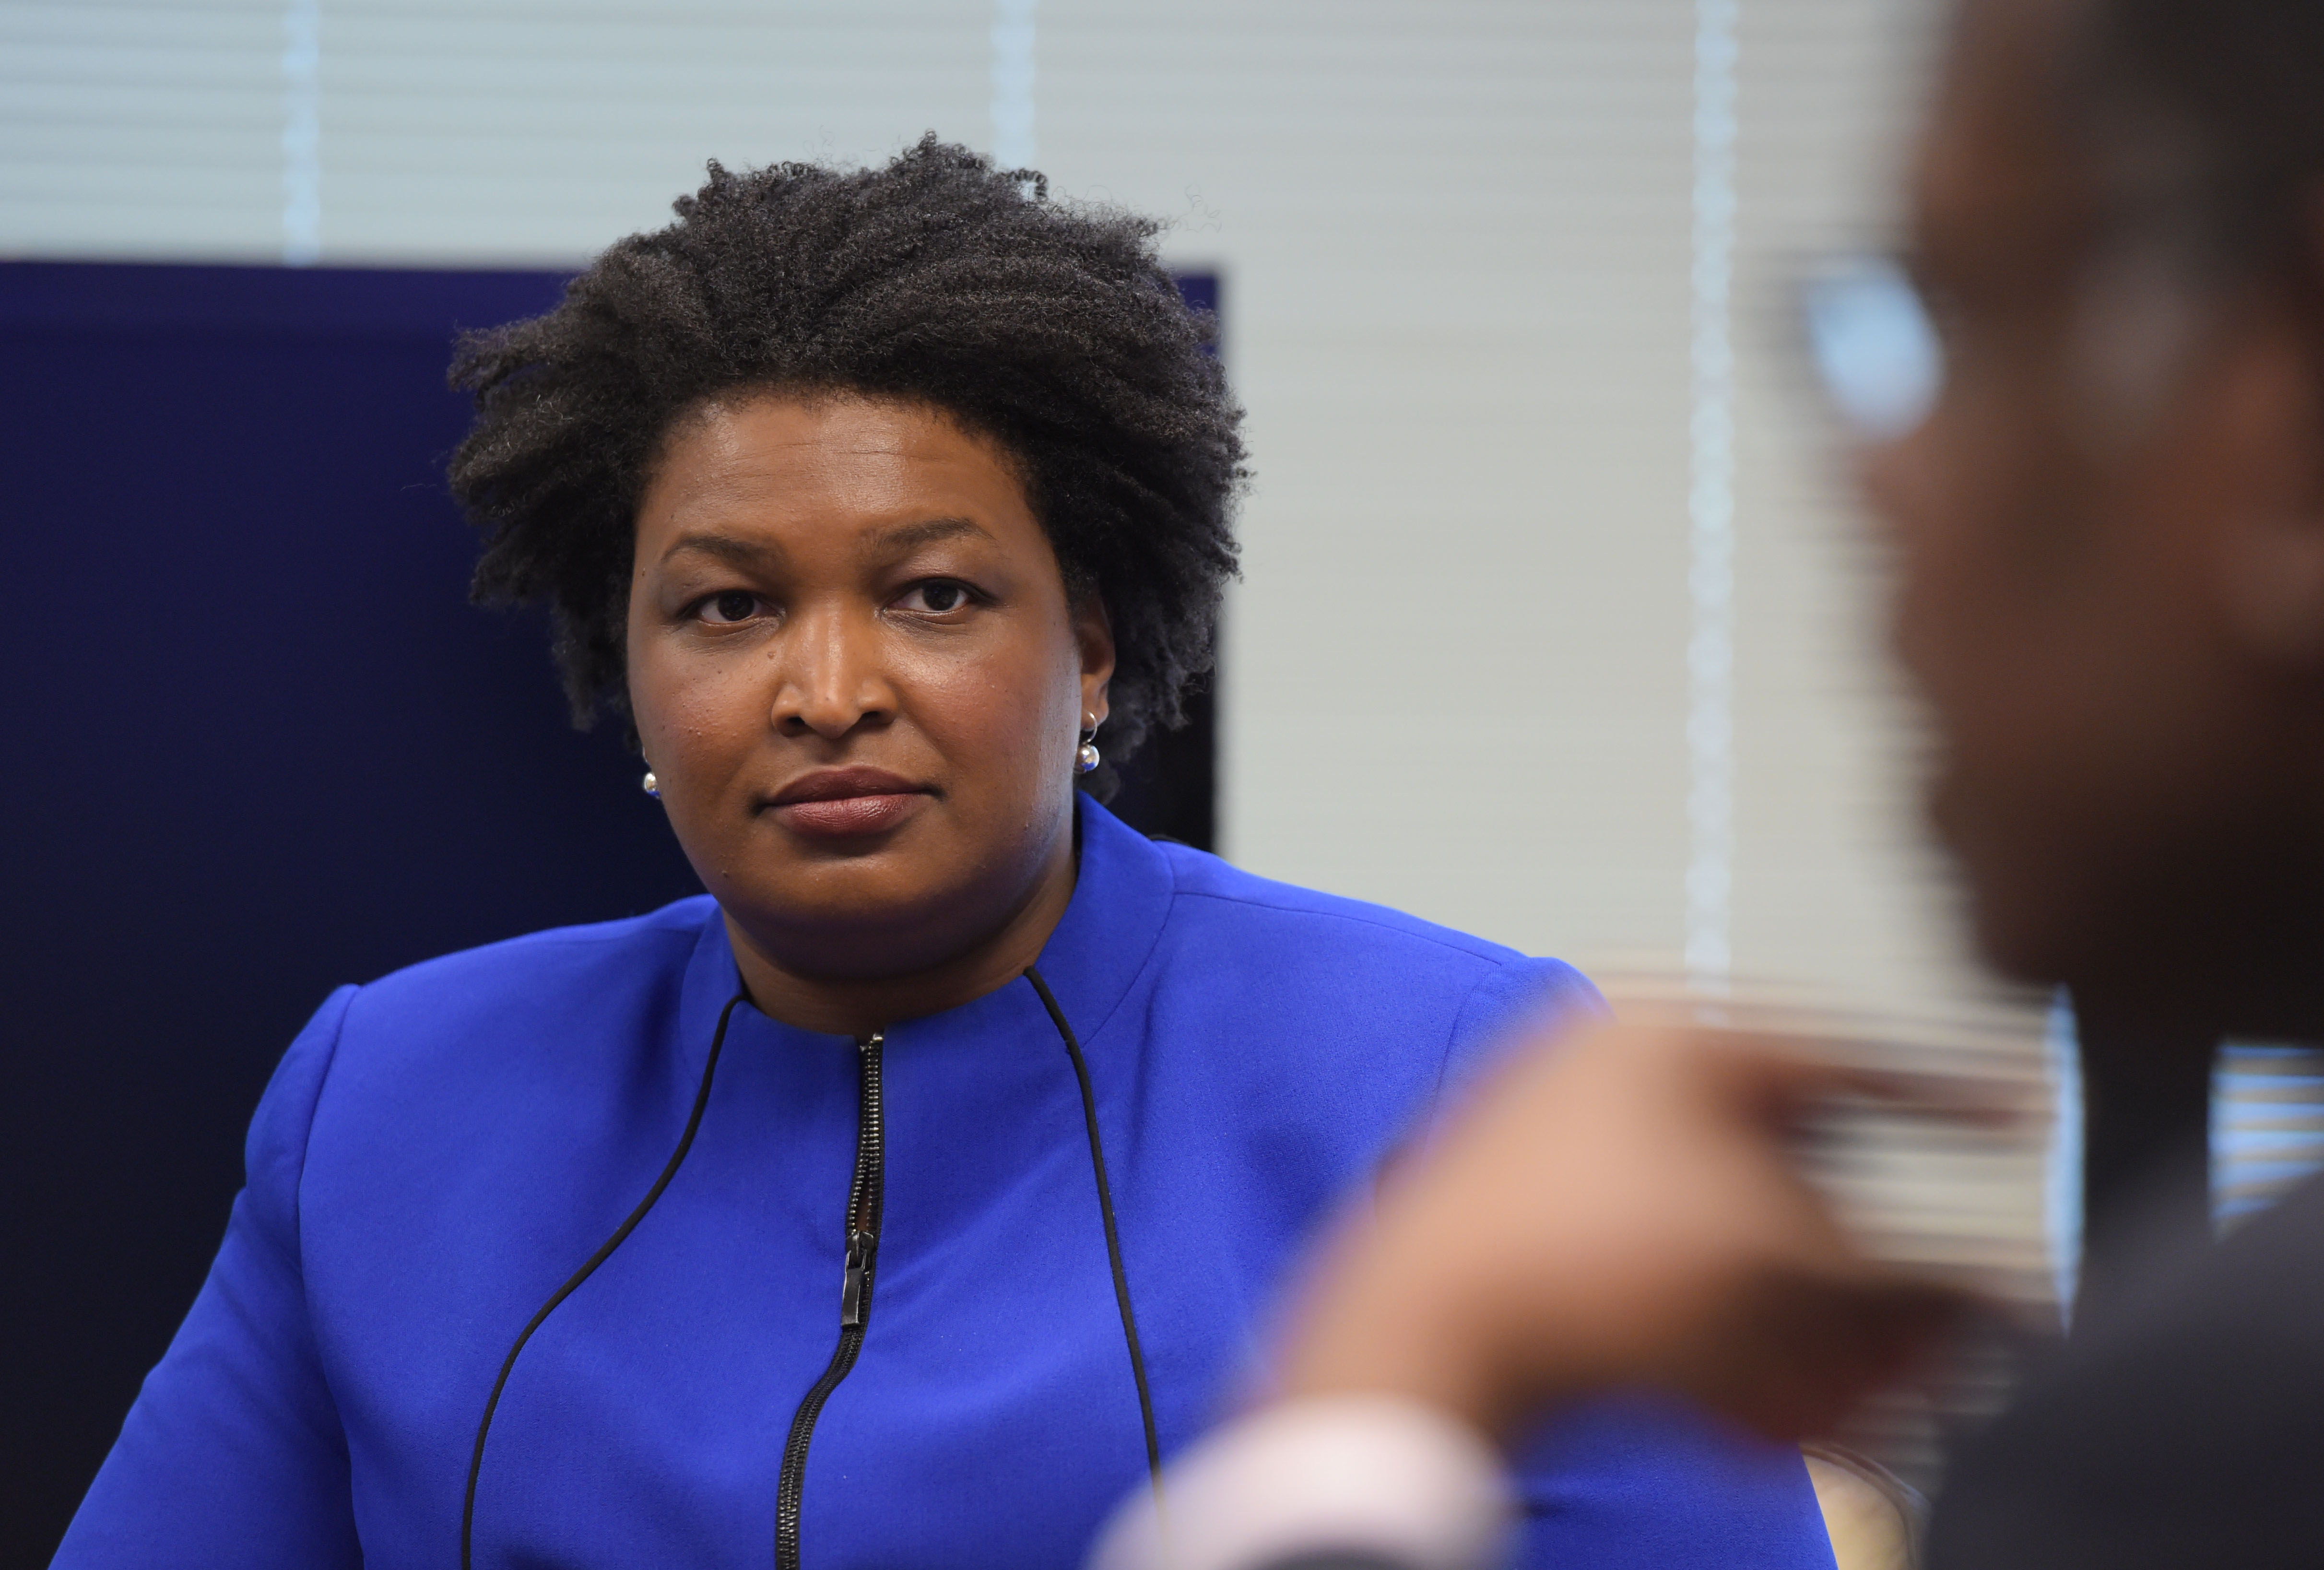 Reading other people's mail: Stacey Abrams resigns as House leader